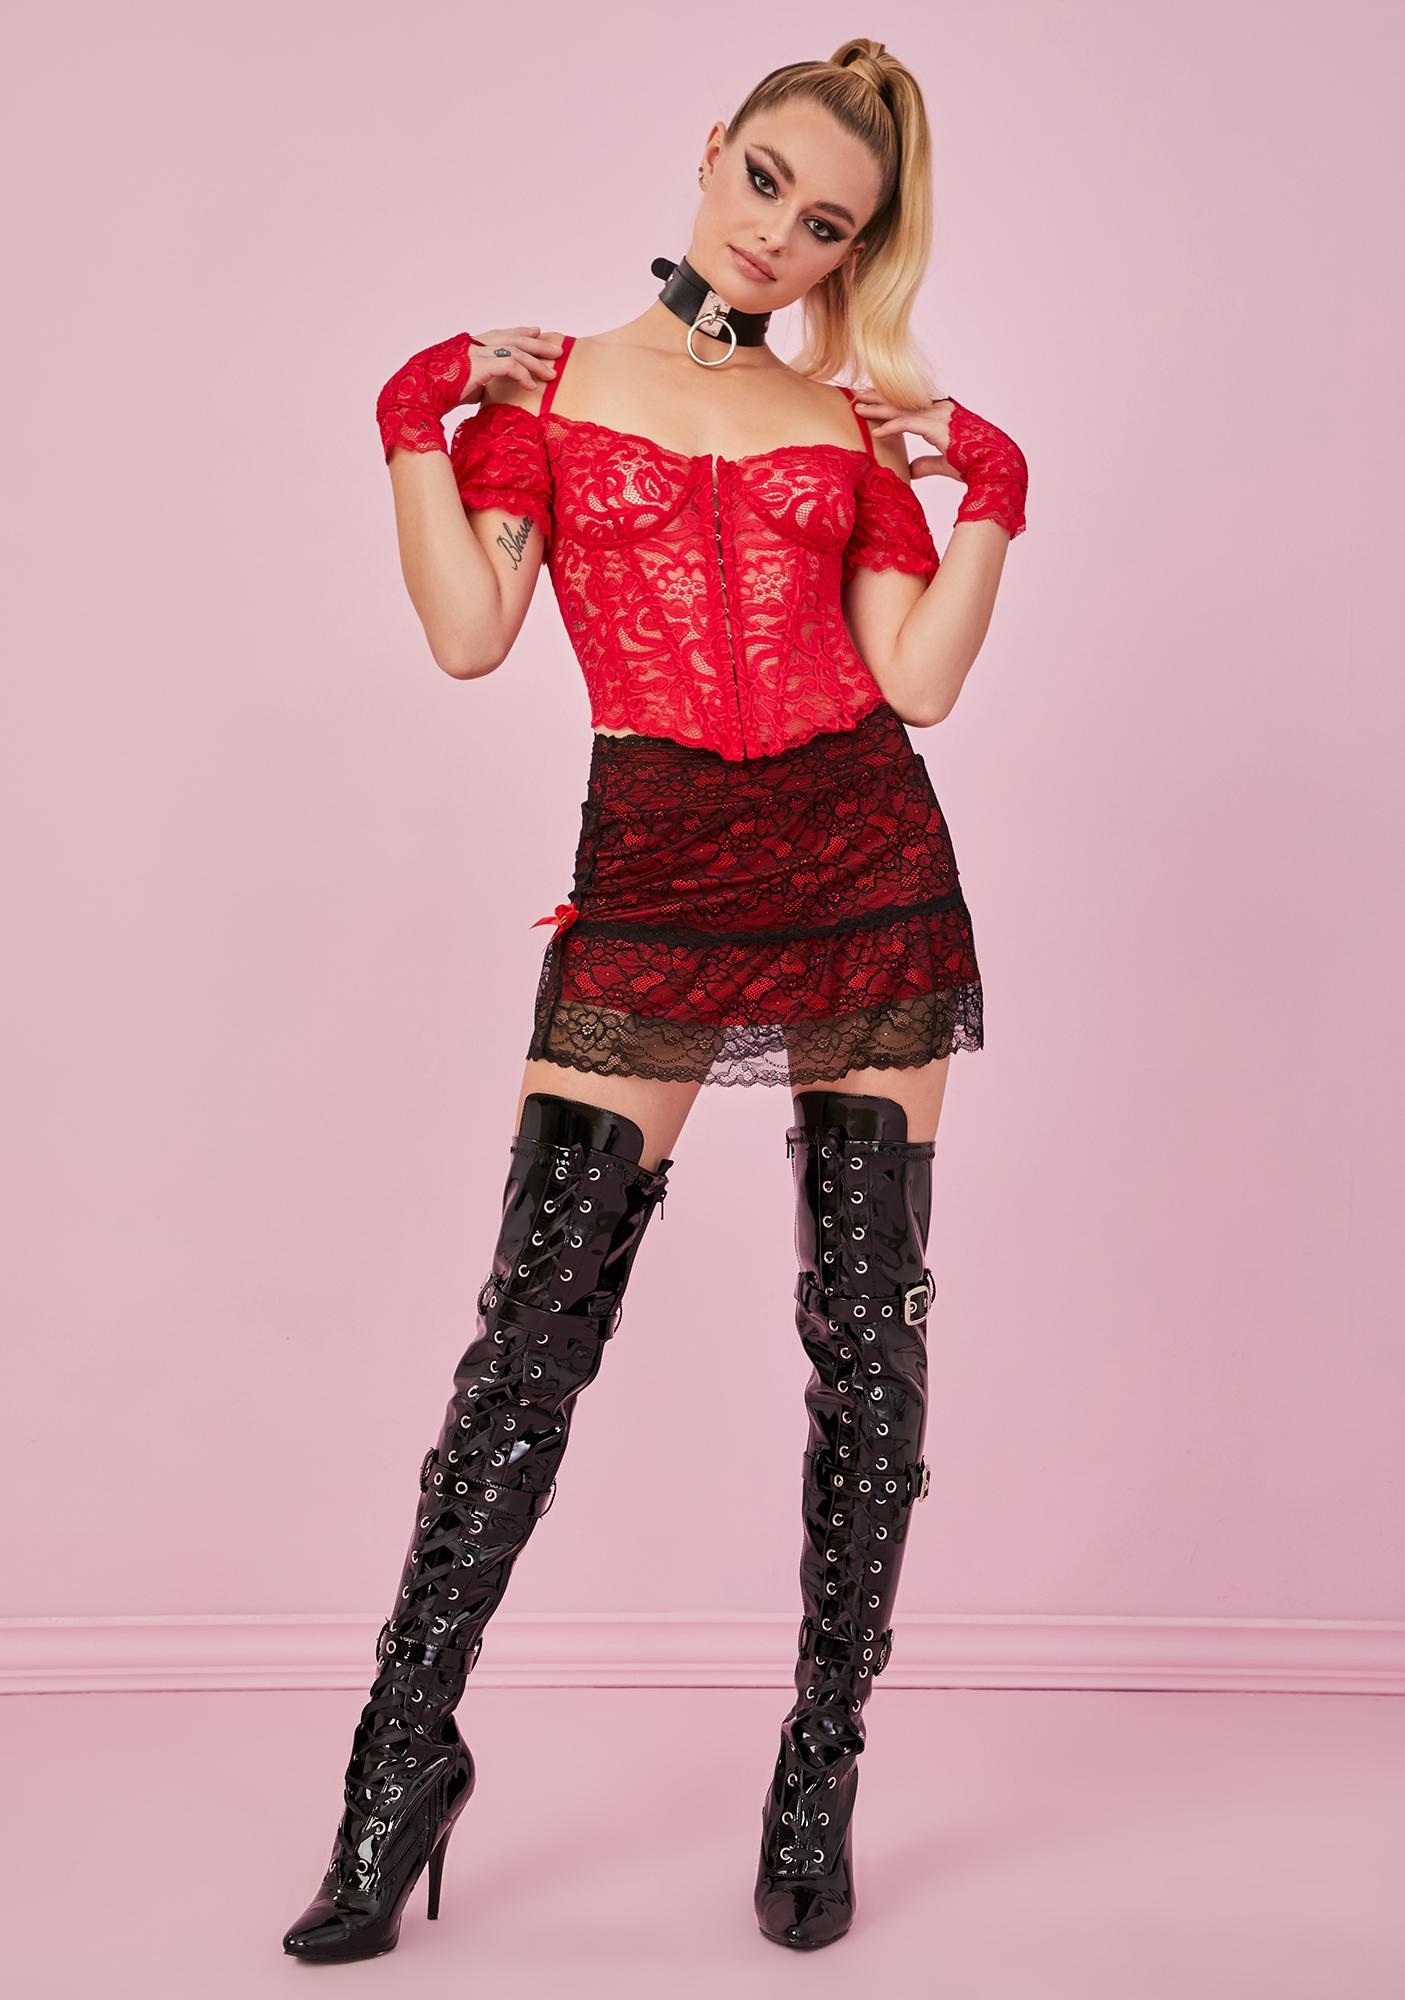 Sugar Thrillz Ruby Yours Truly Lace Corset & Gloves